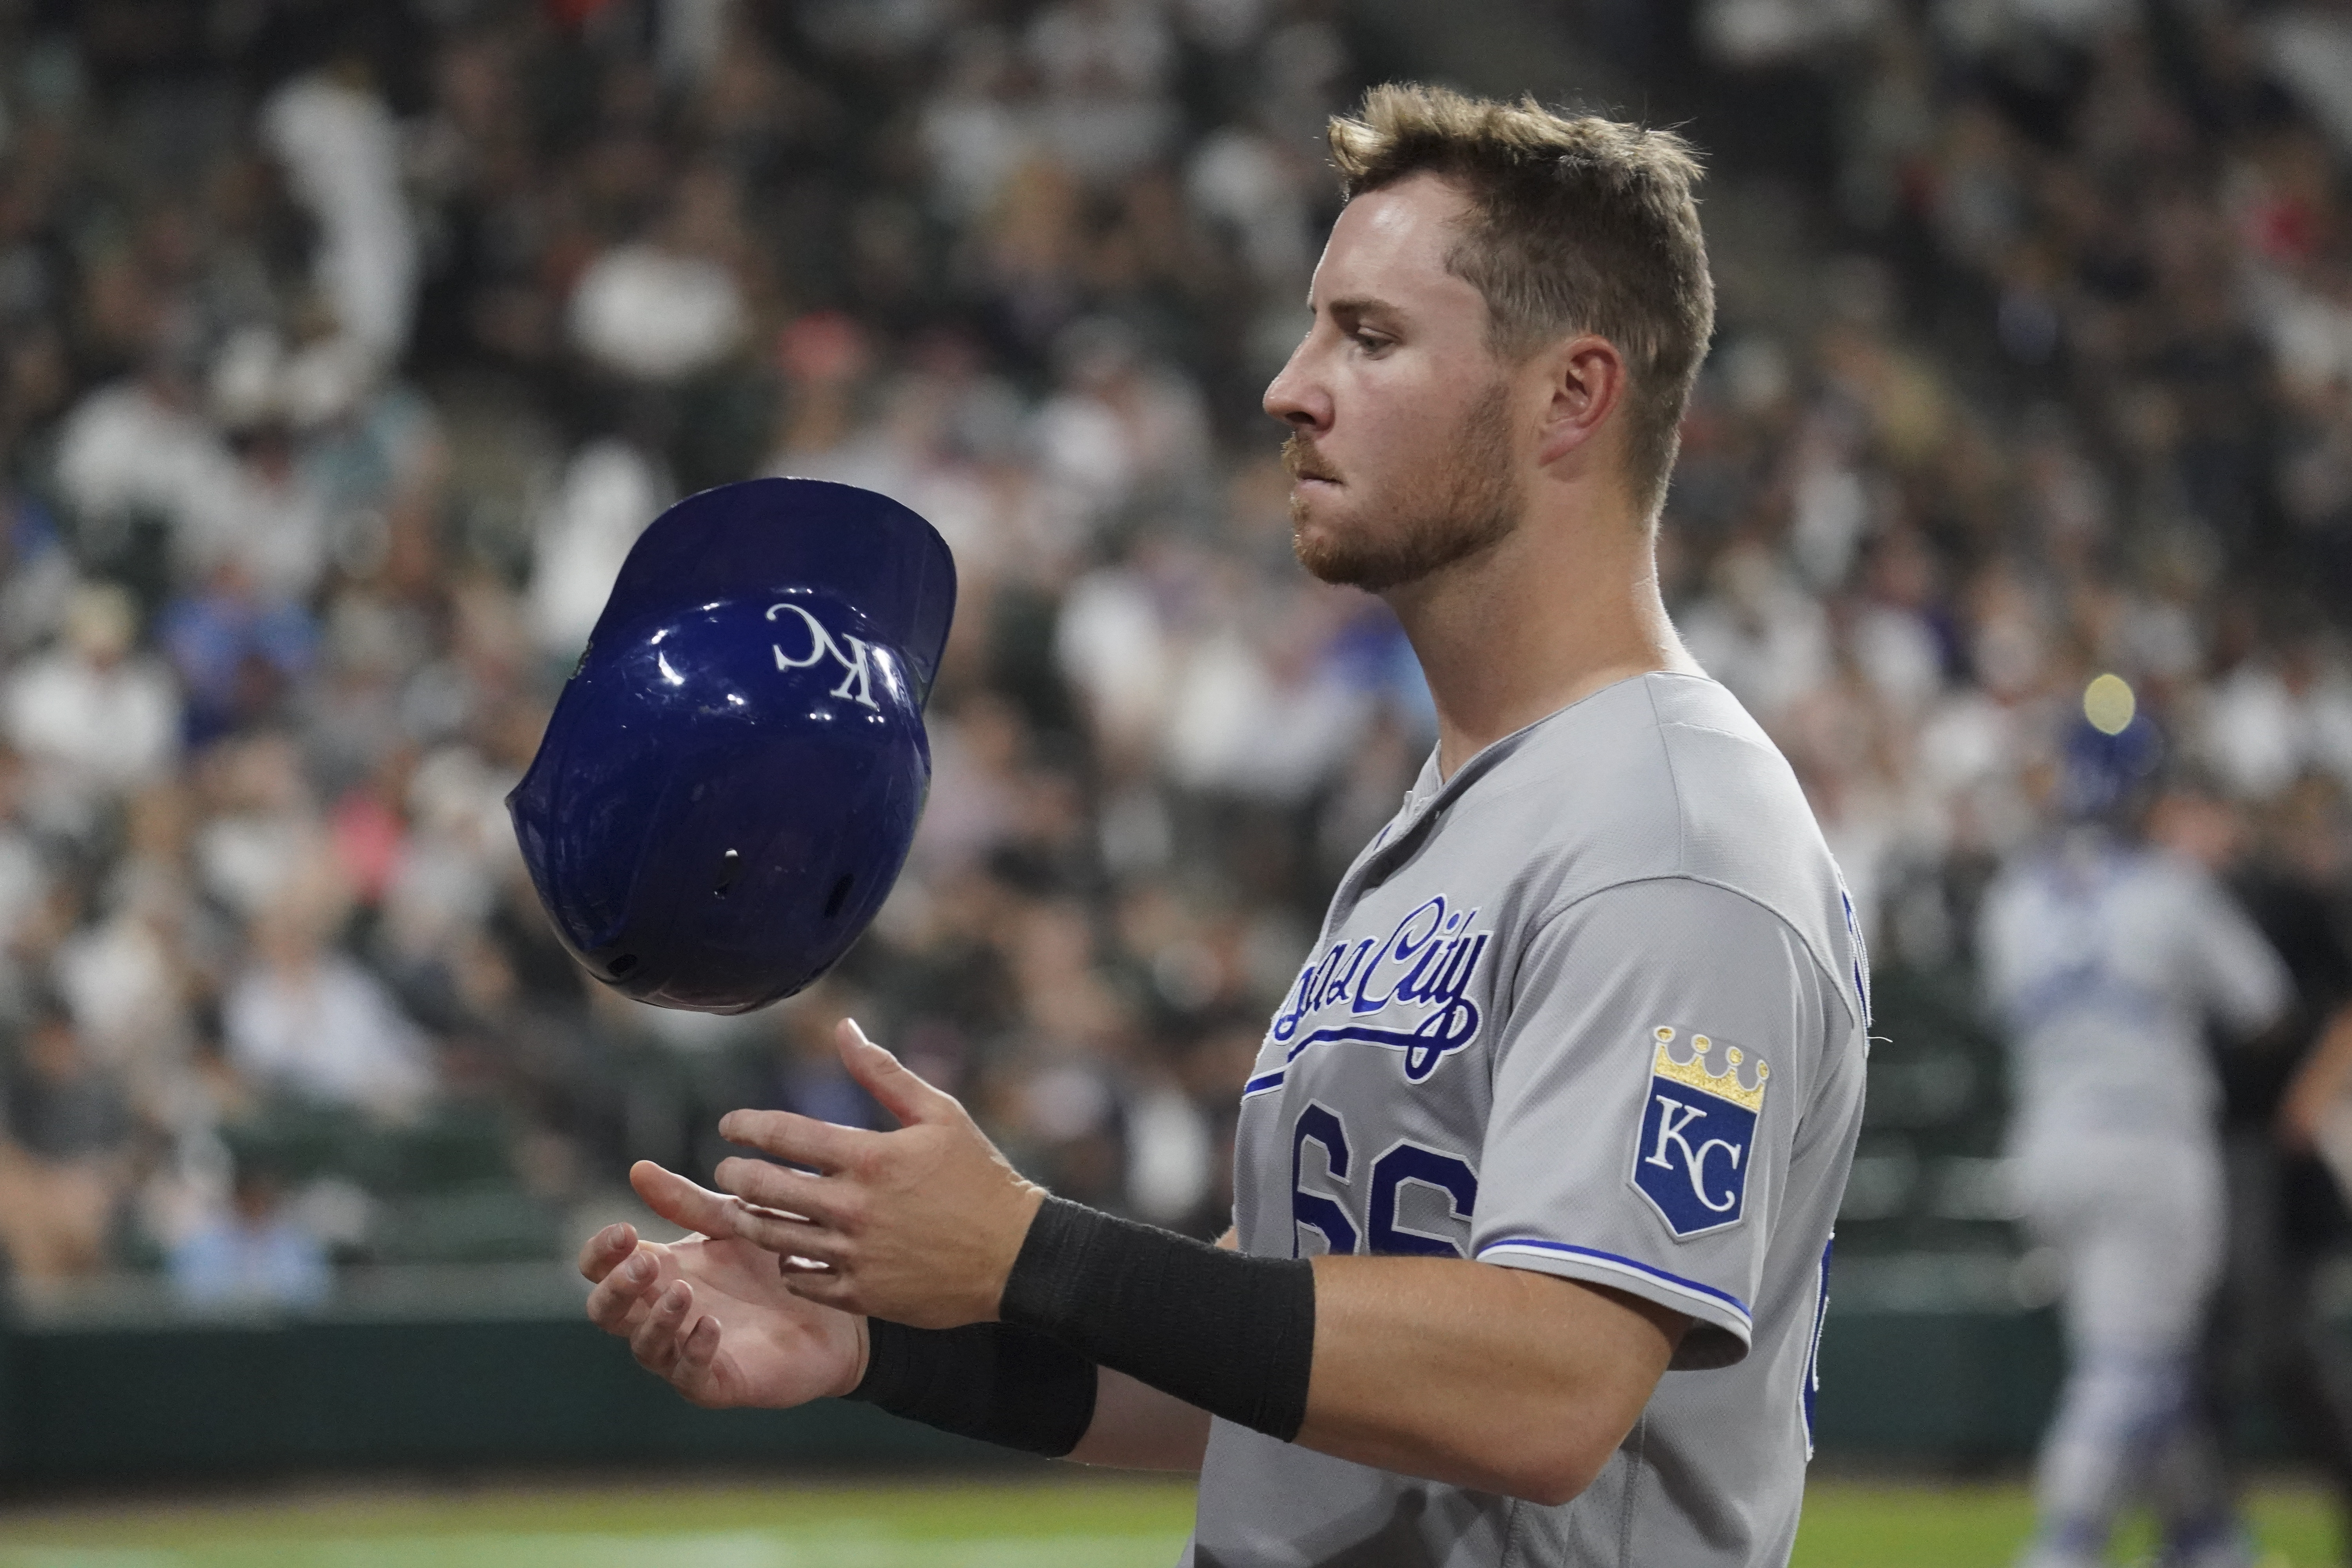 Ryan O'Hearn #66 of the Kansas City Royals reacts during the fifth inning of a game against the Chicago White Sox at Guaranteed Rate Field on August 04, 2021 in Chicago, Illinois.